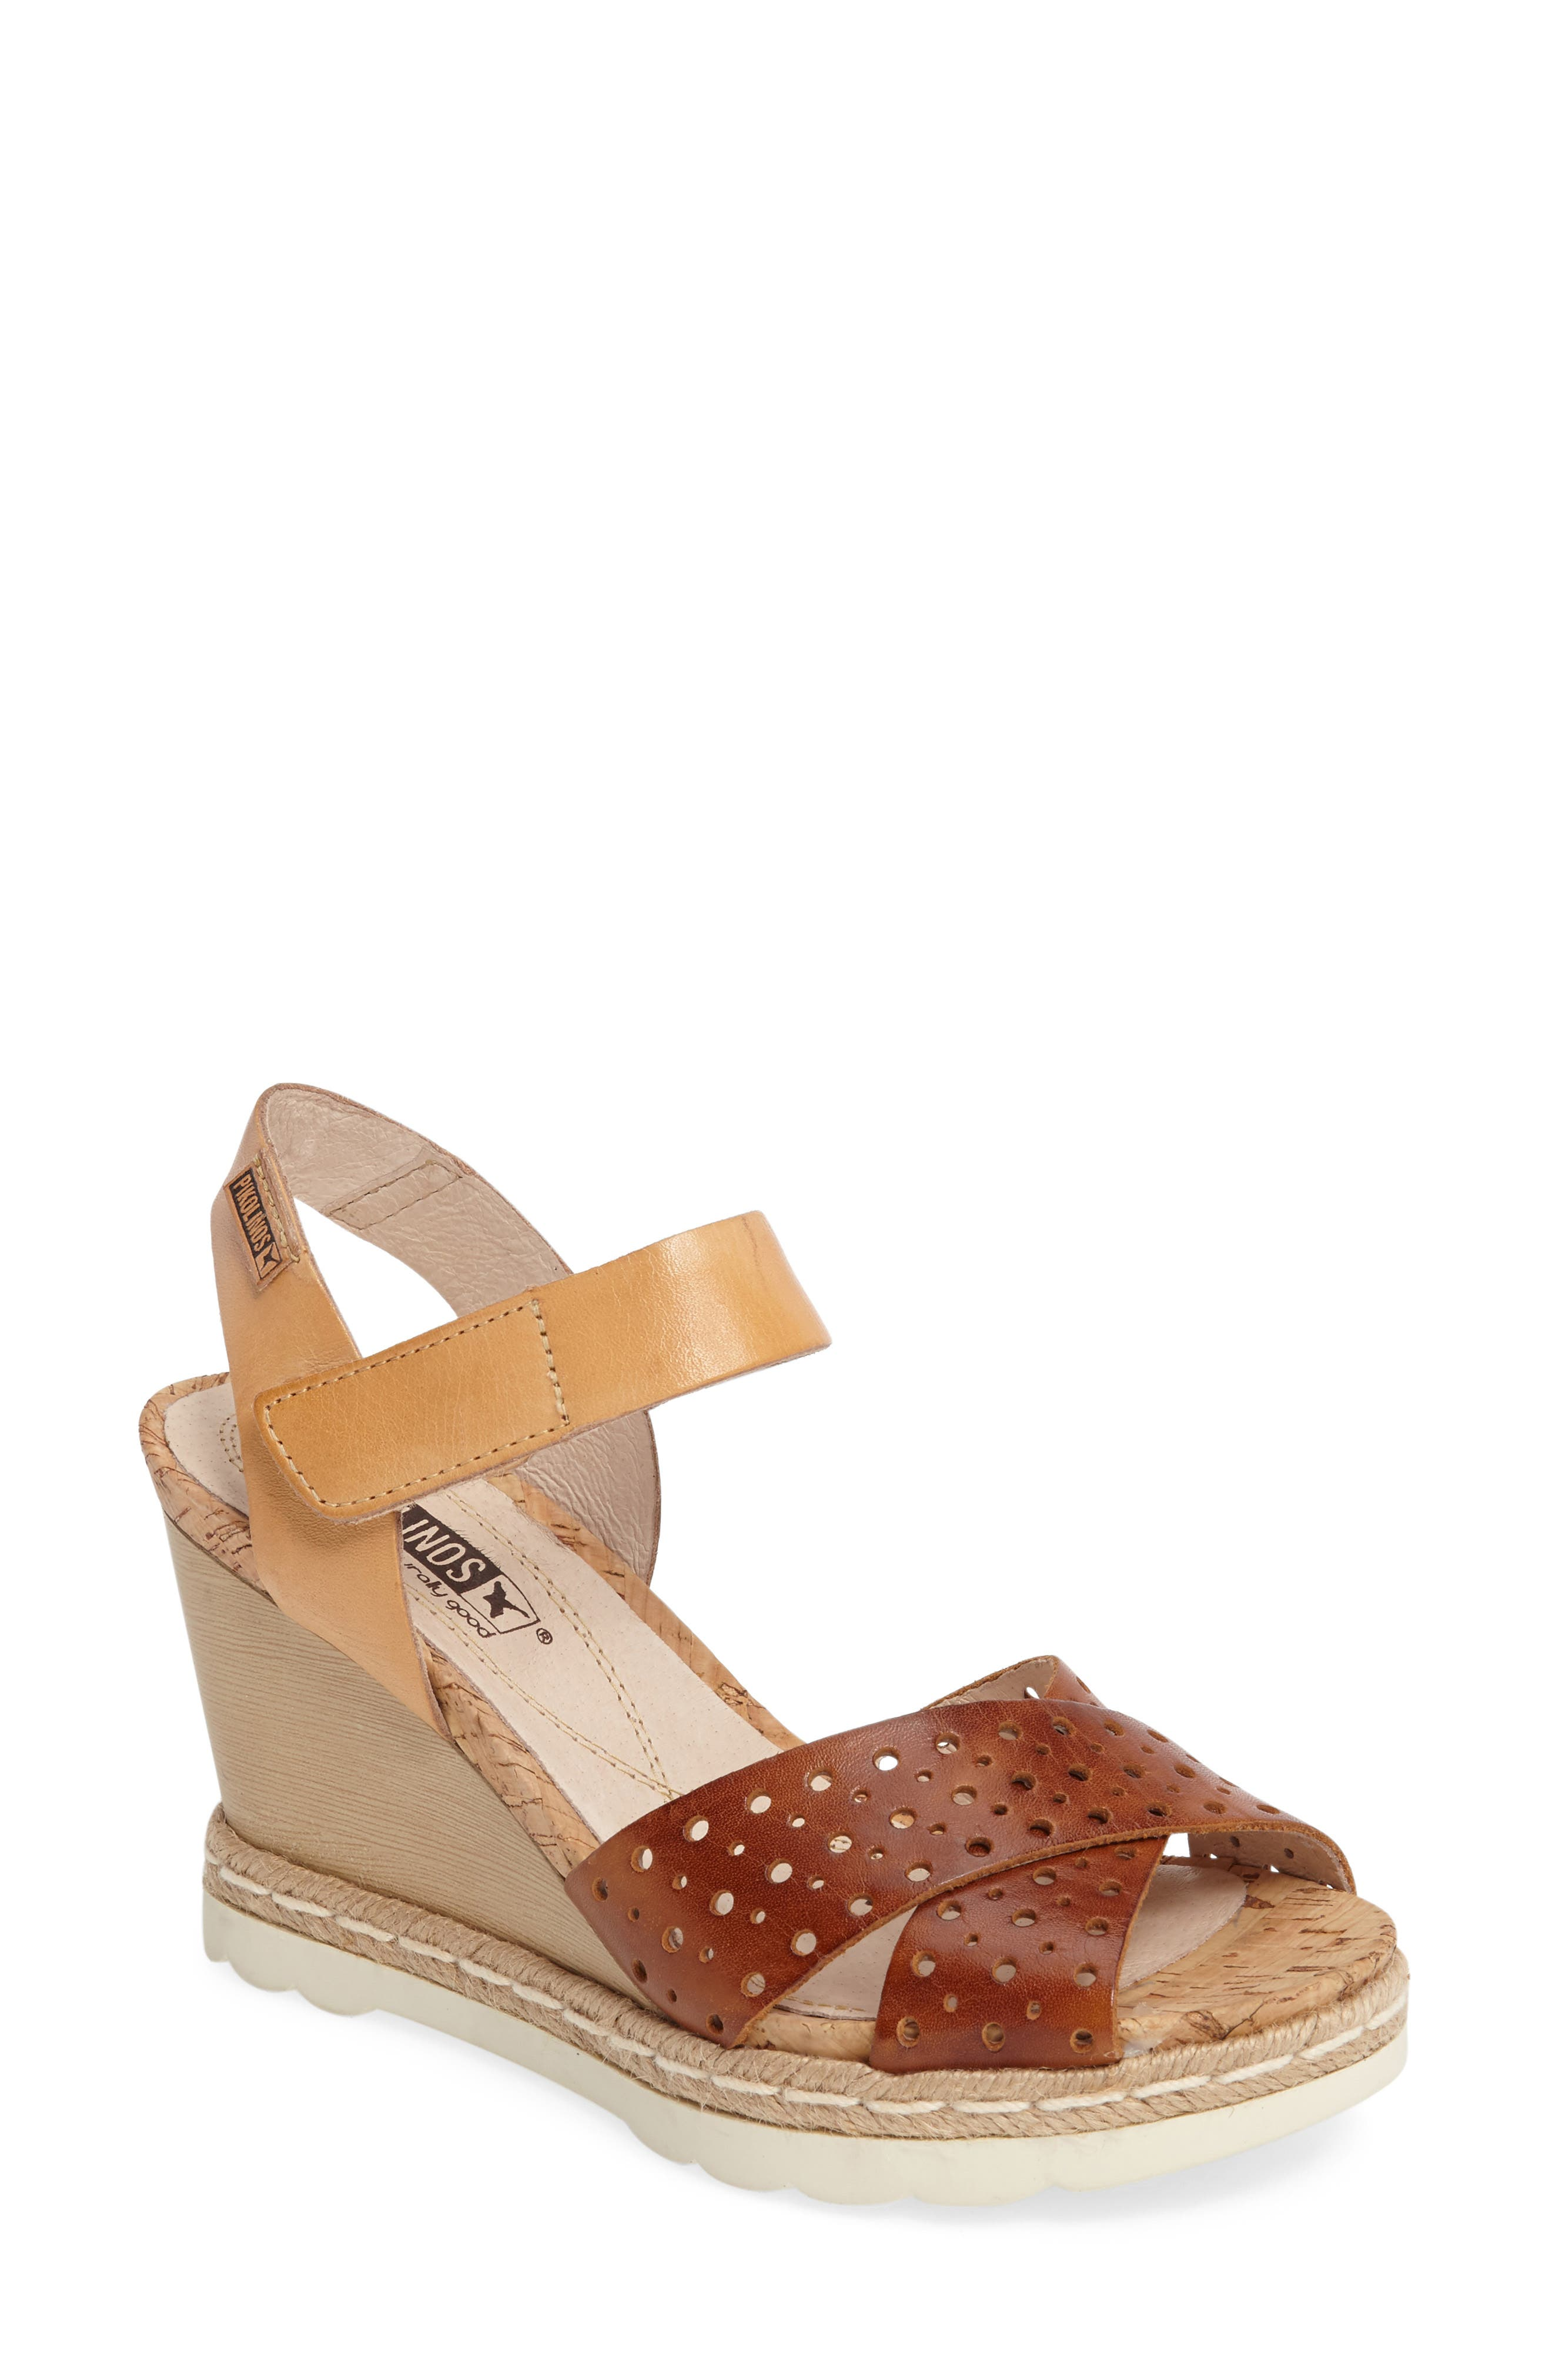 Bali Wedge Sandal,                             Main thumbnail 1, color,                             BRANDY CAMEL LEATHER